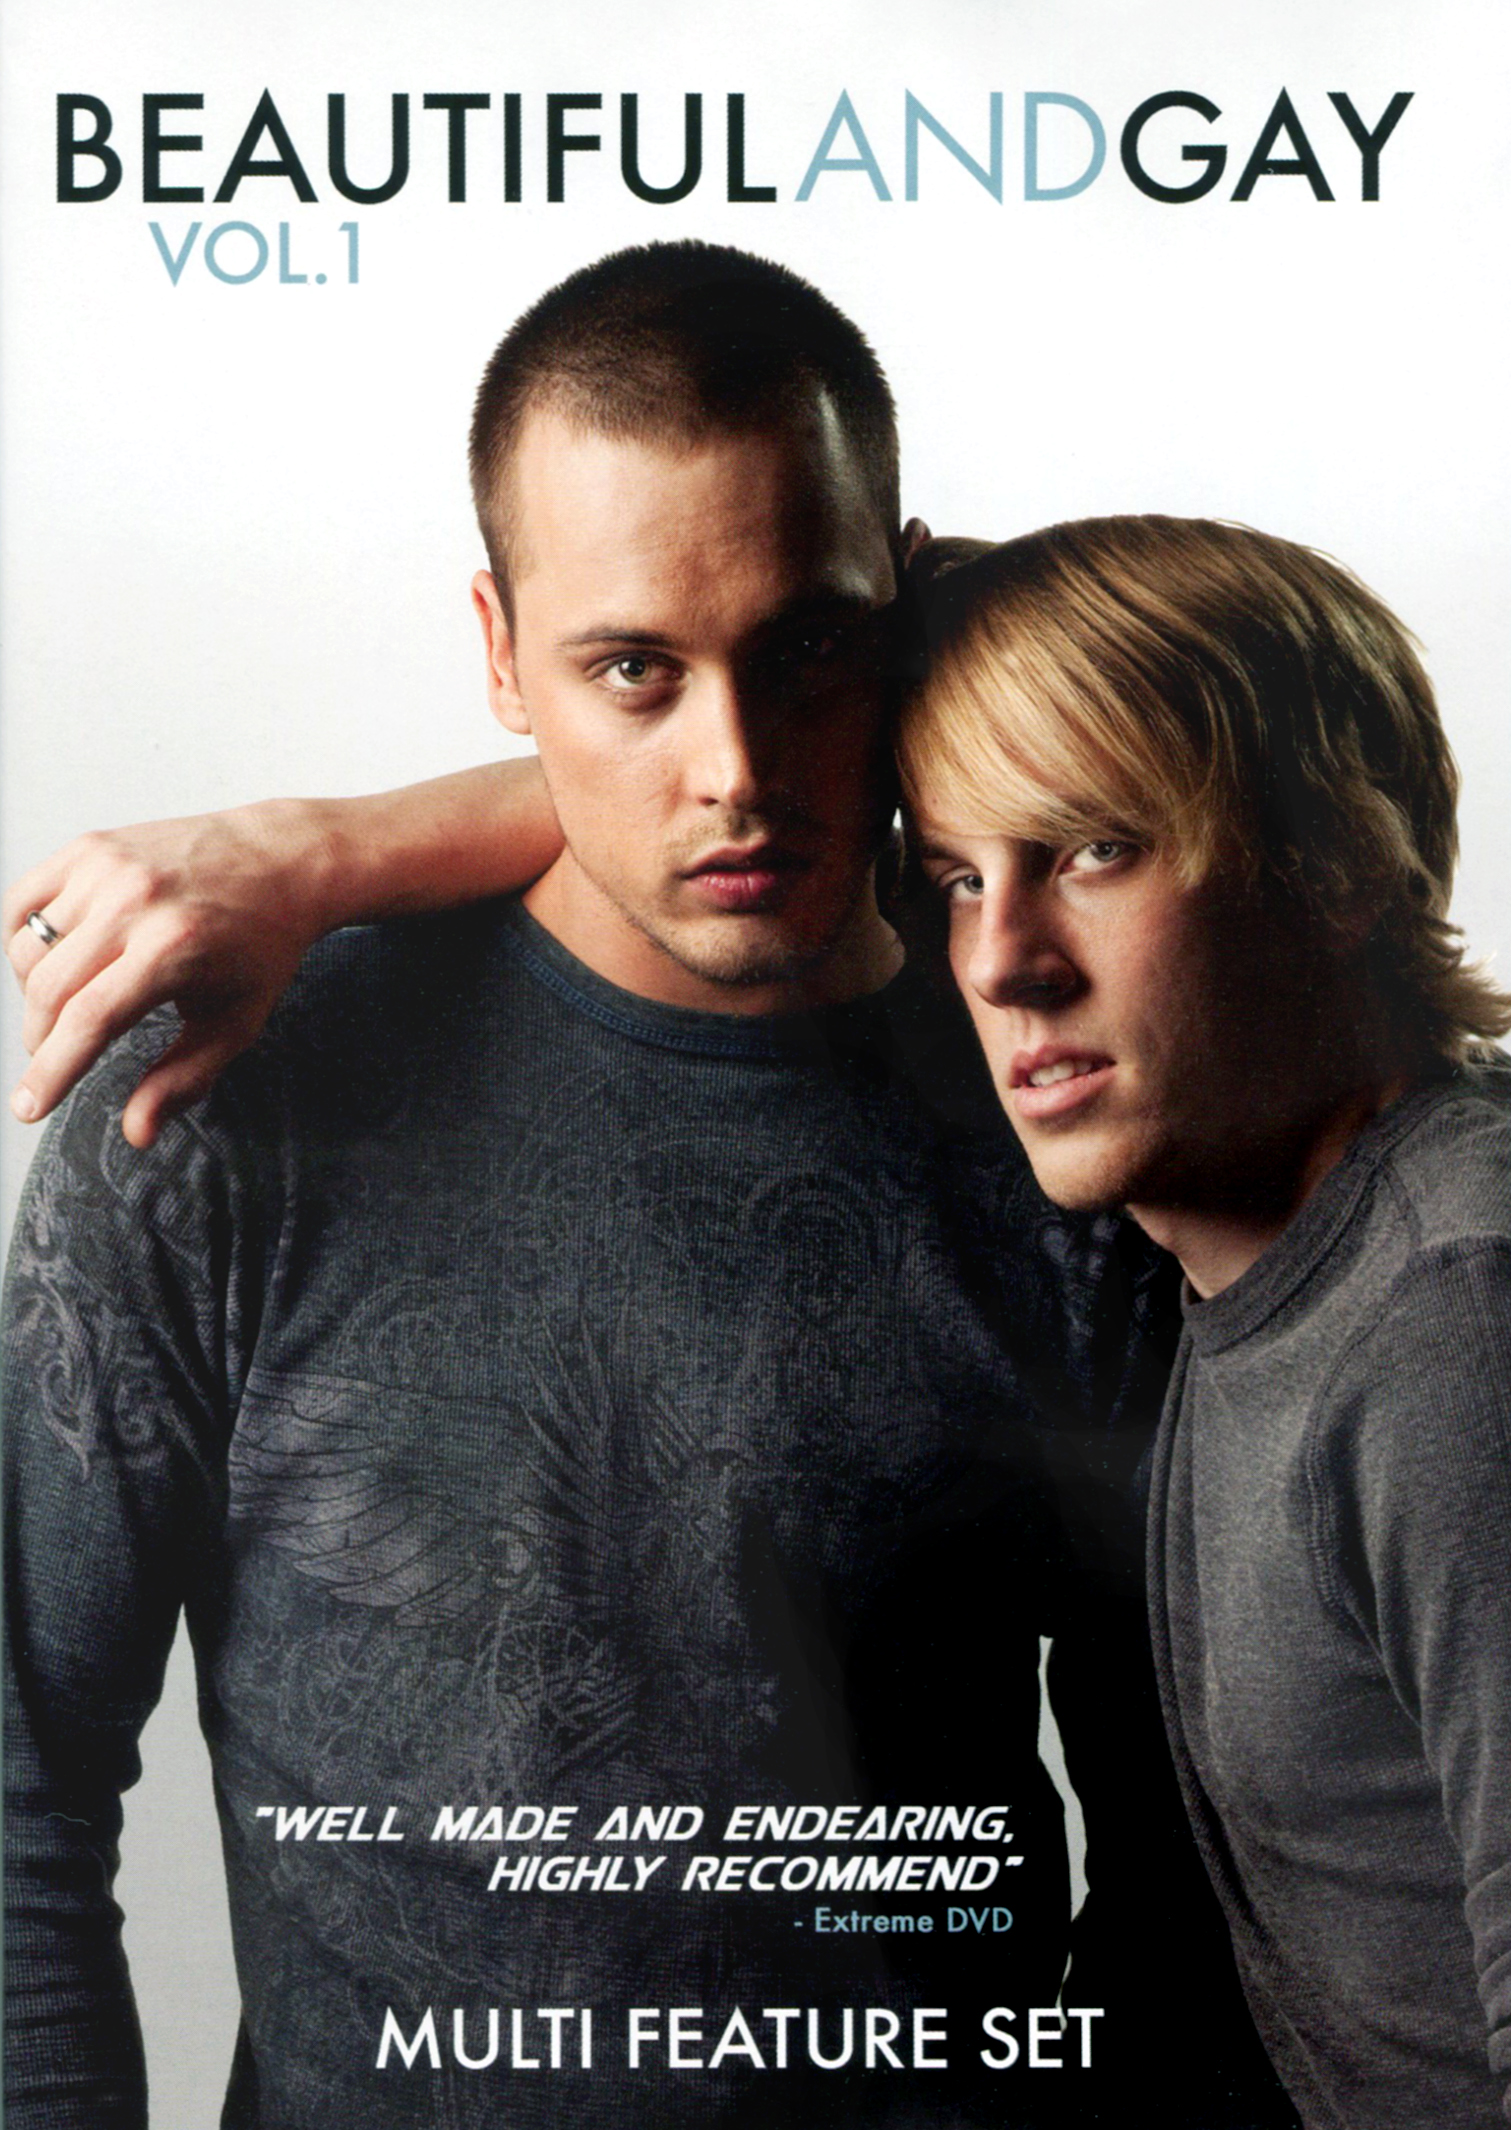 Extreme gay dvd